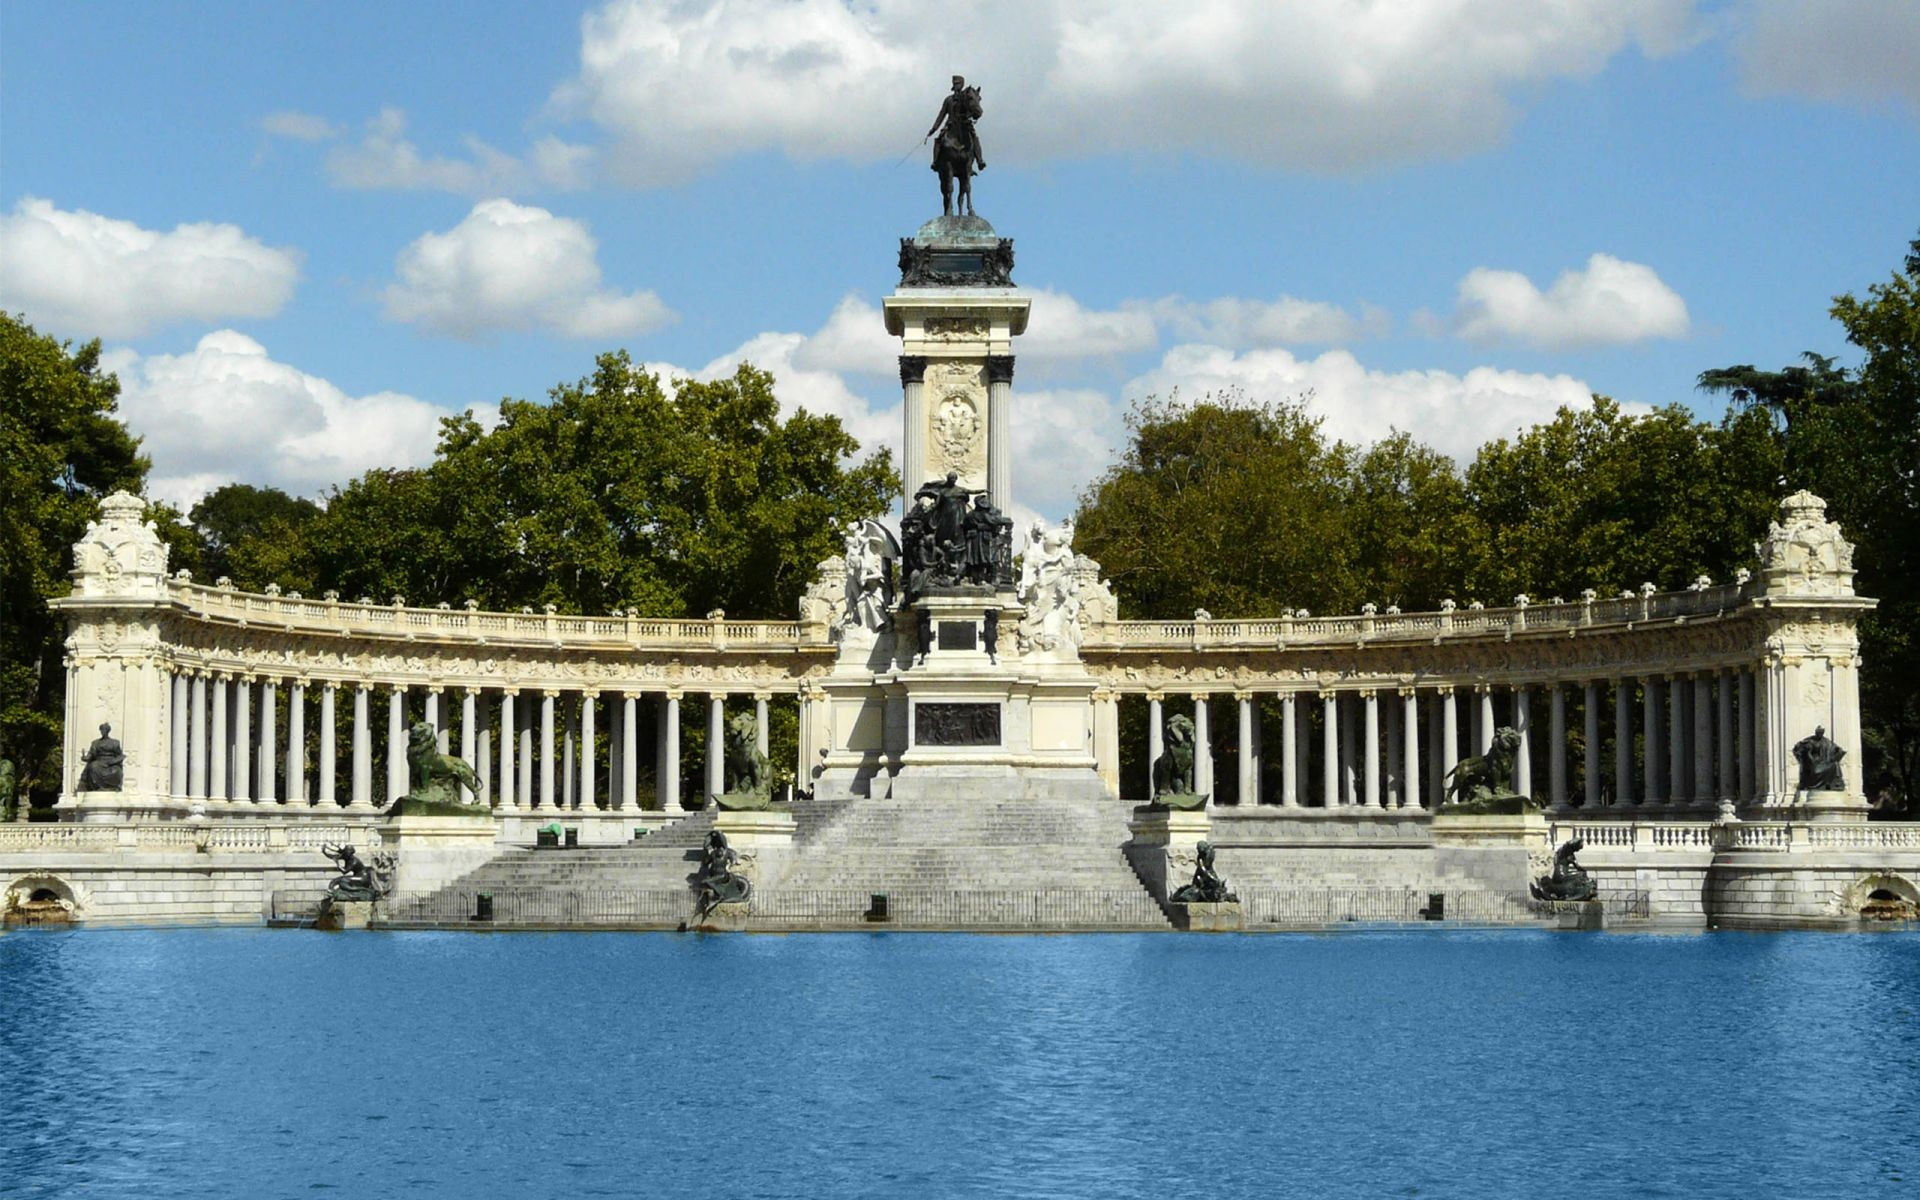 Walk around Buen Retiro Park